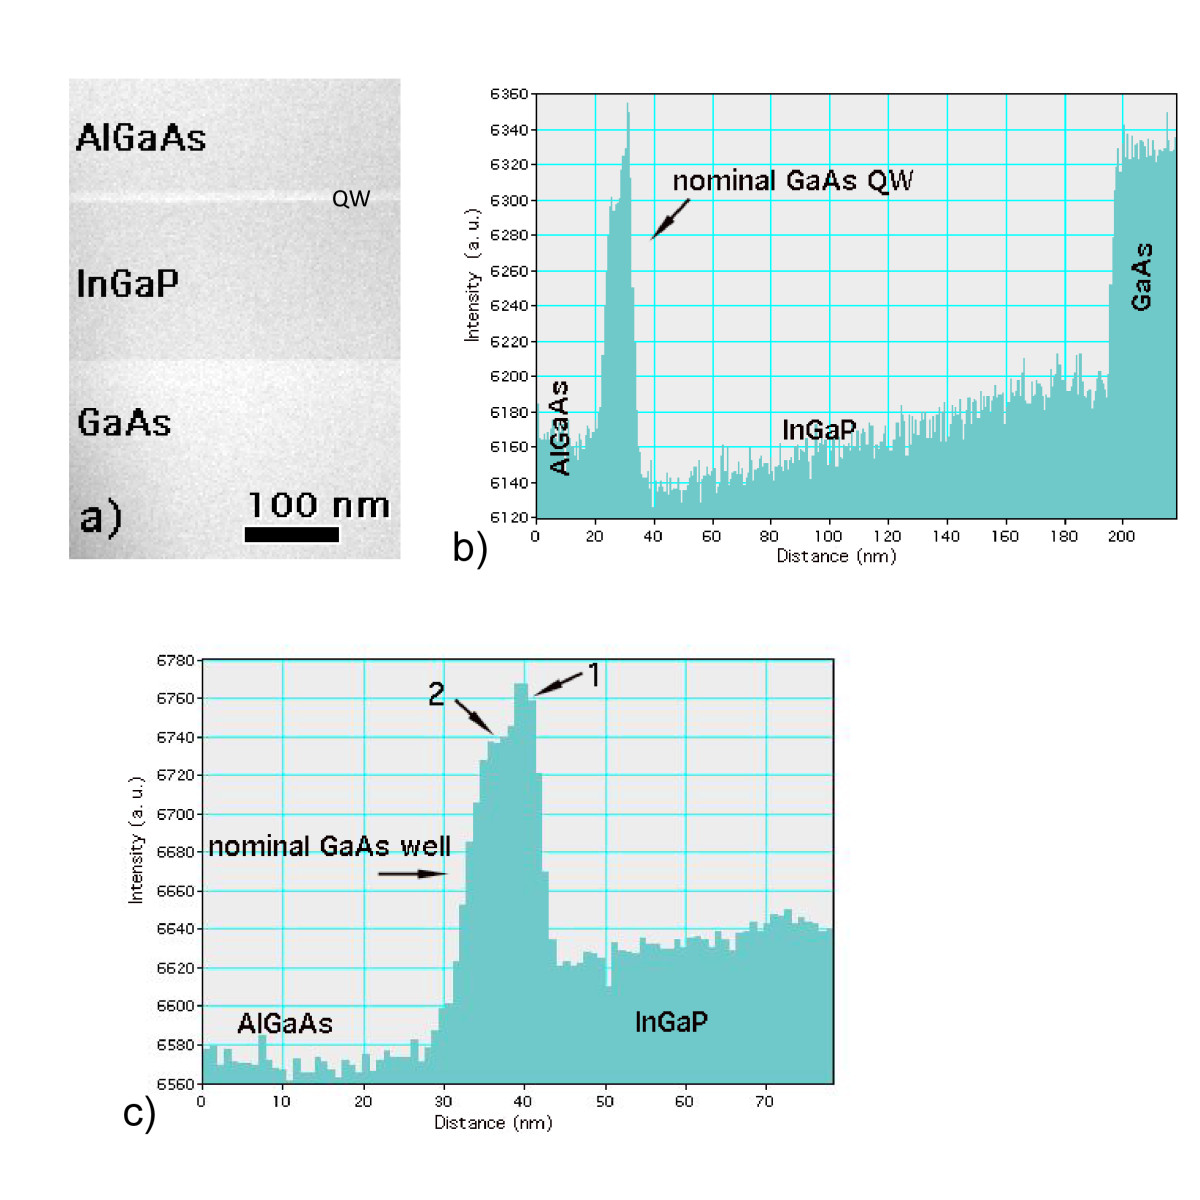 http://static-content.springer.com/image/art%3A10.1186%2F1556-276X-6-194/MediaObjects/11671_2010_Article_122_Fig4_HTML.jpg